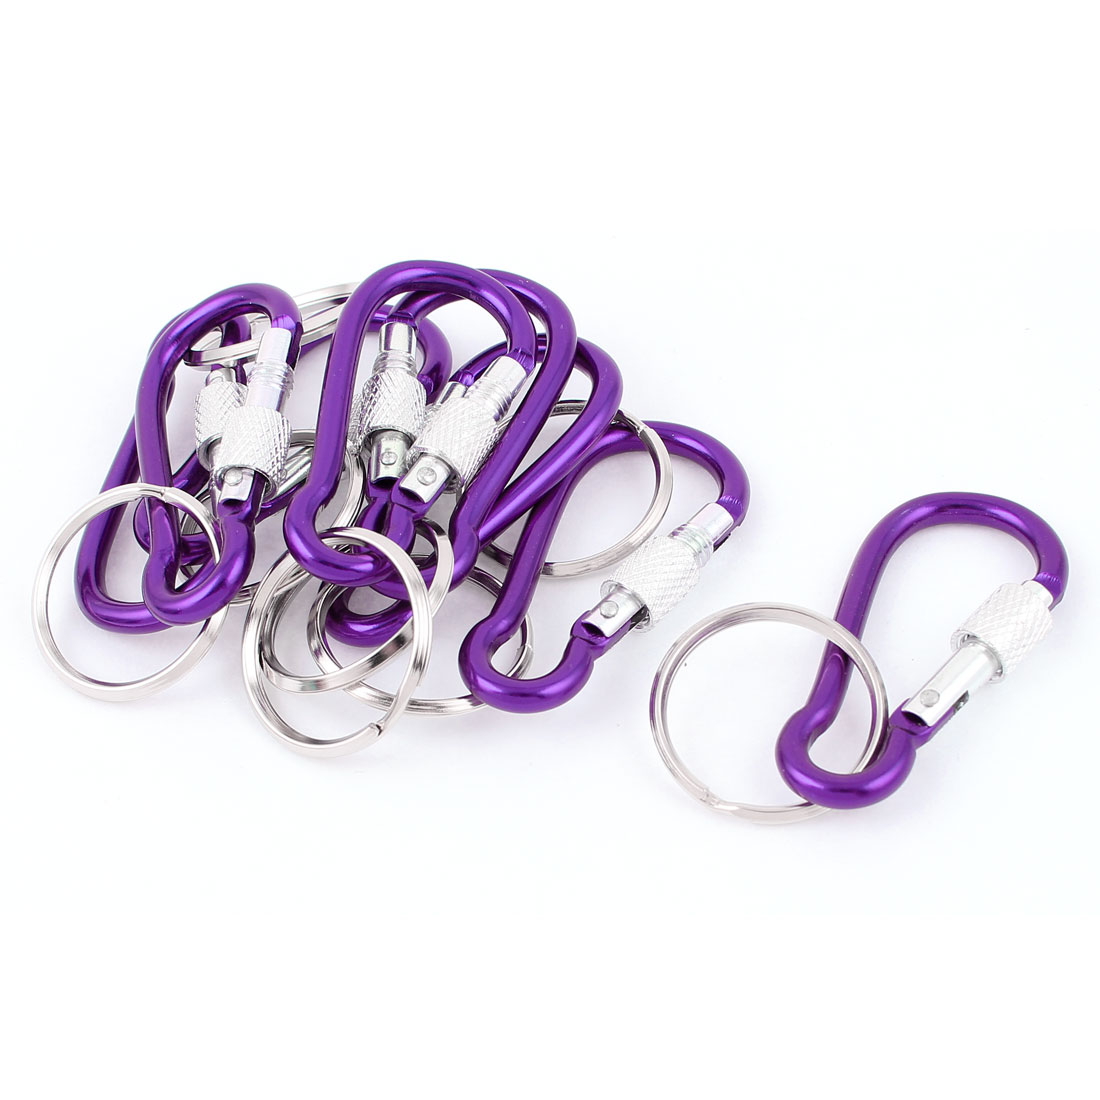 8pcs Purple Screw Lock Carabiner D-Ring Camping Clip Hike Hook Keychain Keyring Key Ring Chain